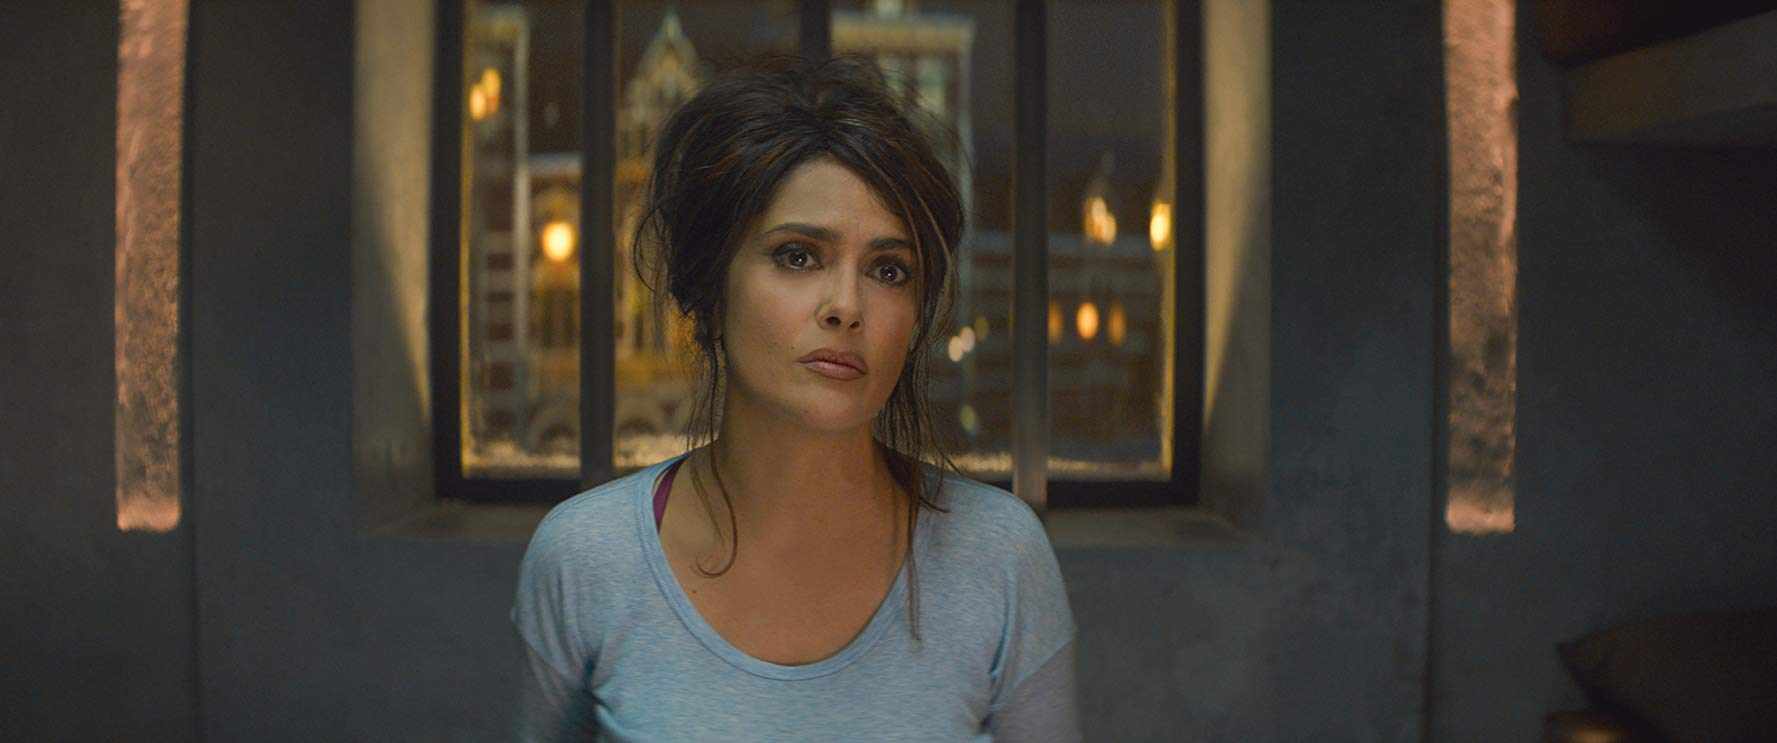 Salma Hayek In Talks To Join Marvel's The Eternals